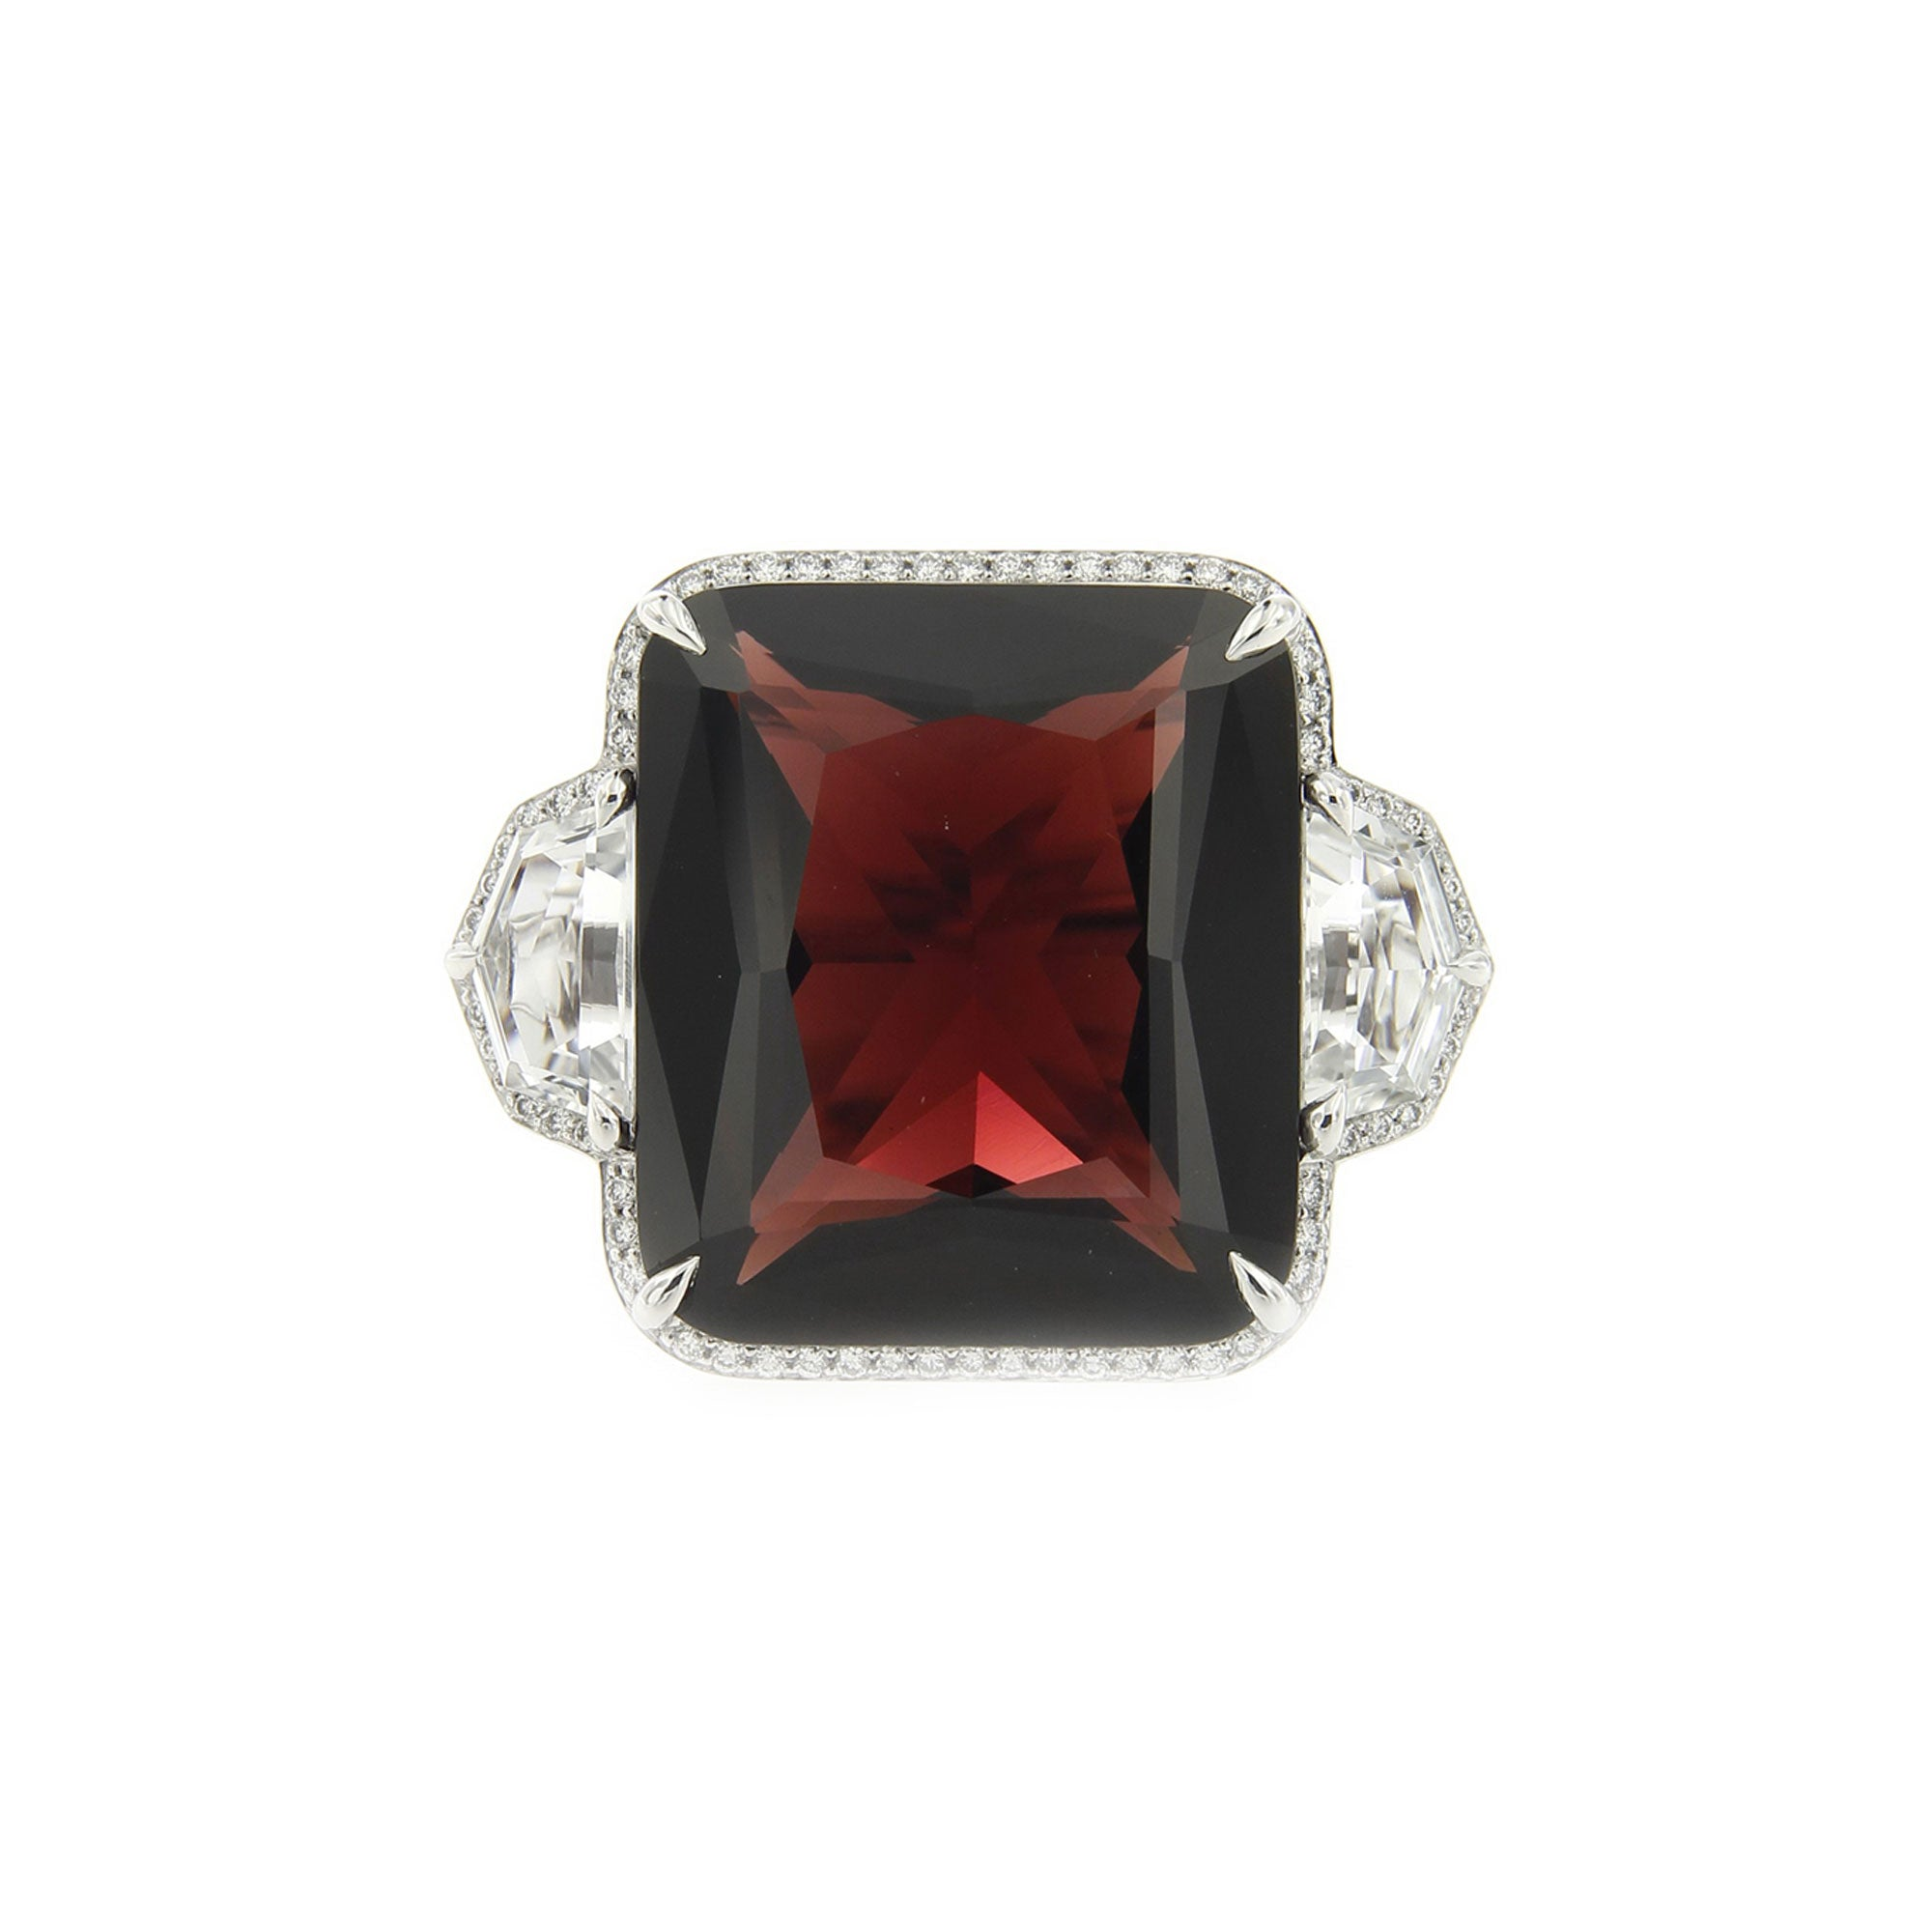 vintage birthstone by style for and ring january gorgeous christopher evans the diamond garnet